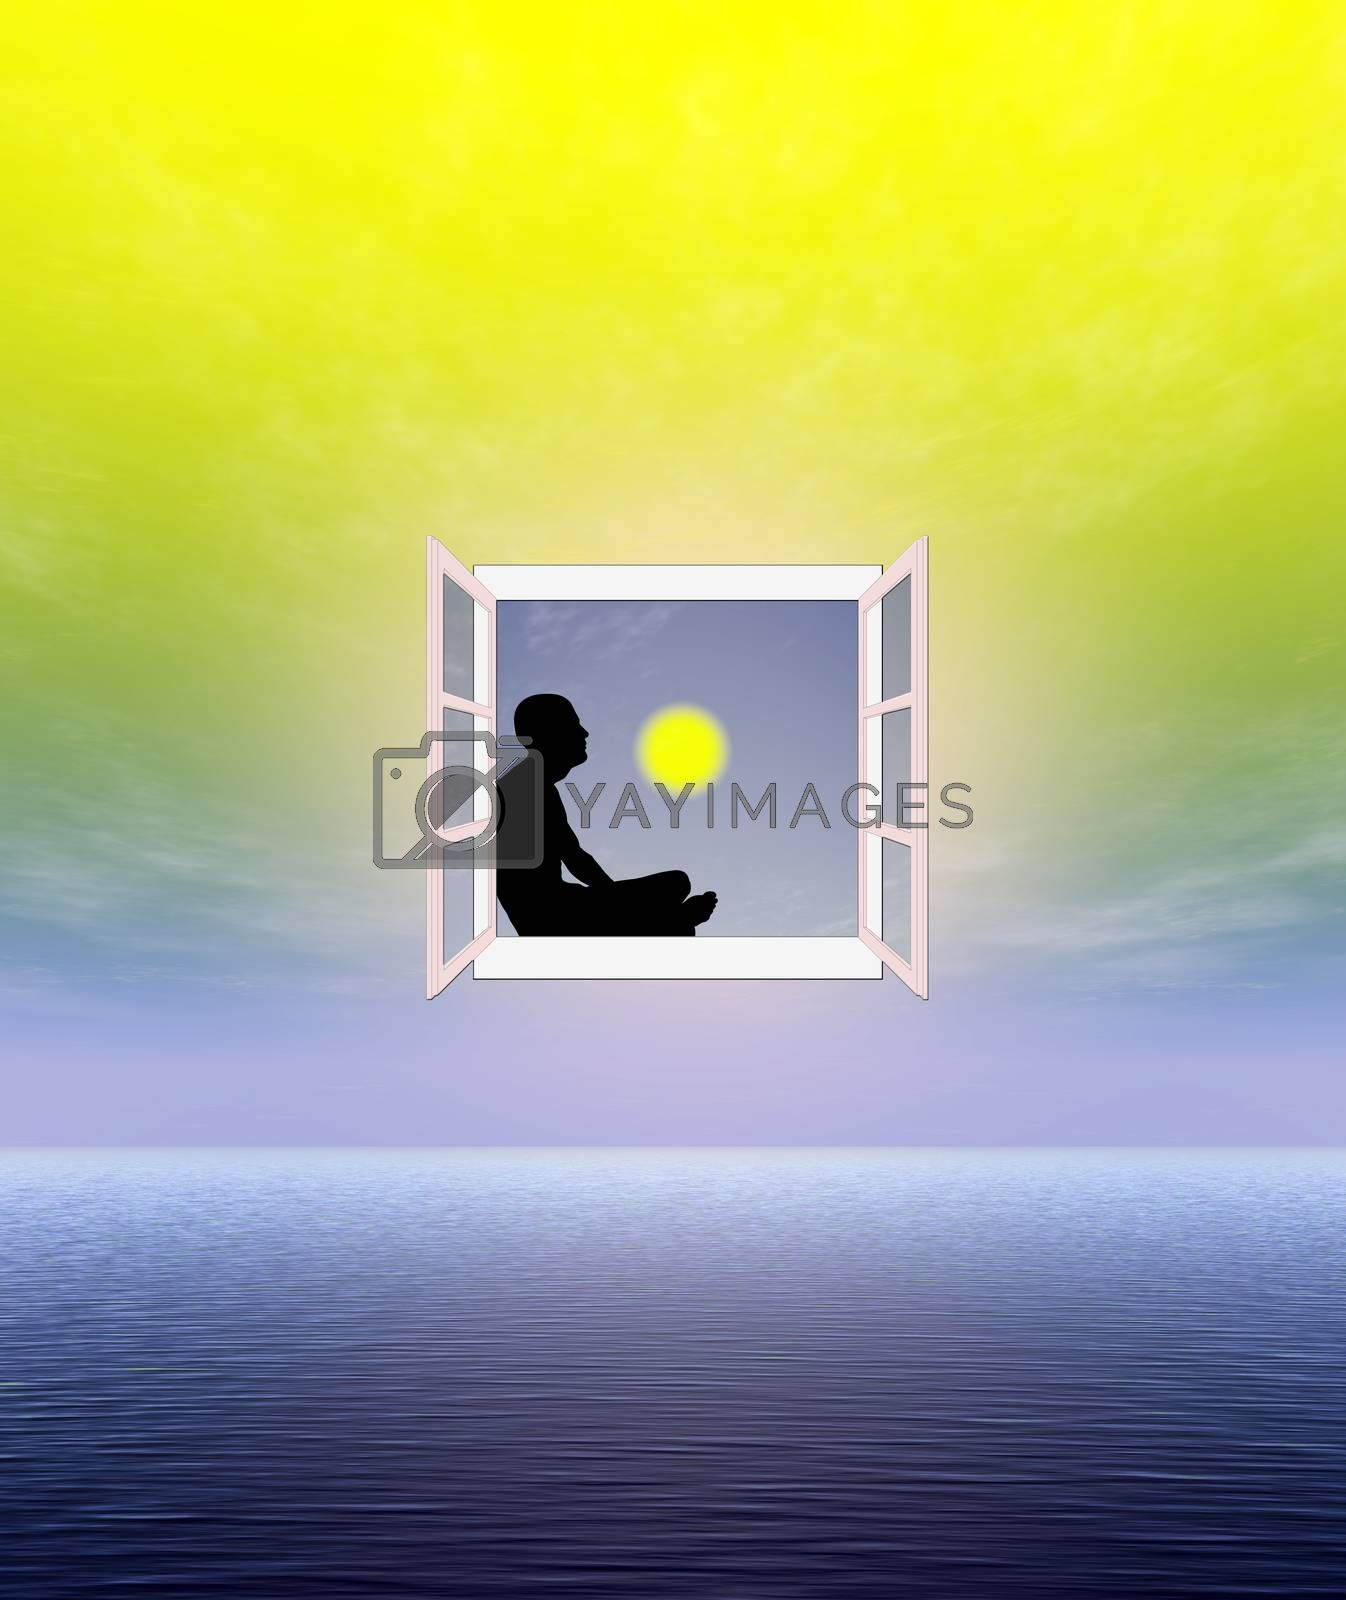 Concept of a meditative person contemplating and relaxing in his spiritual world